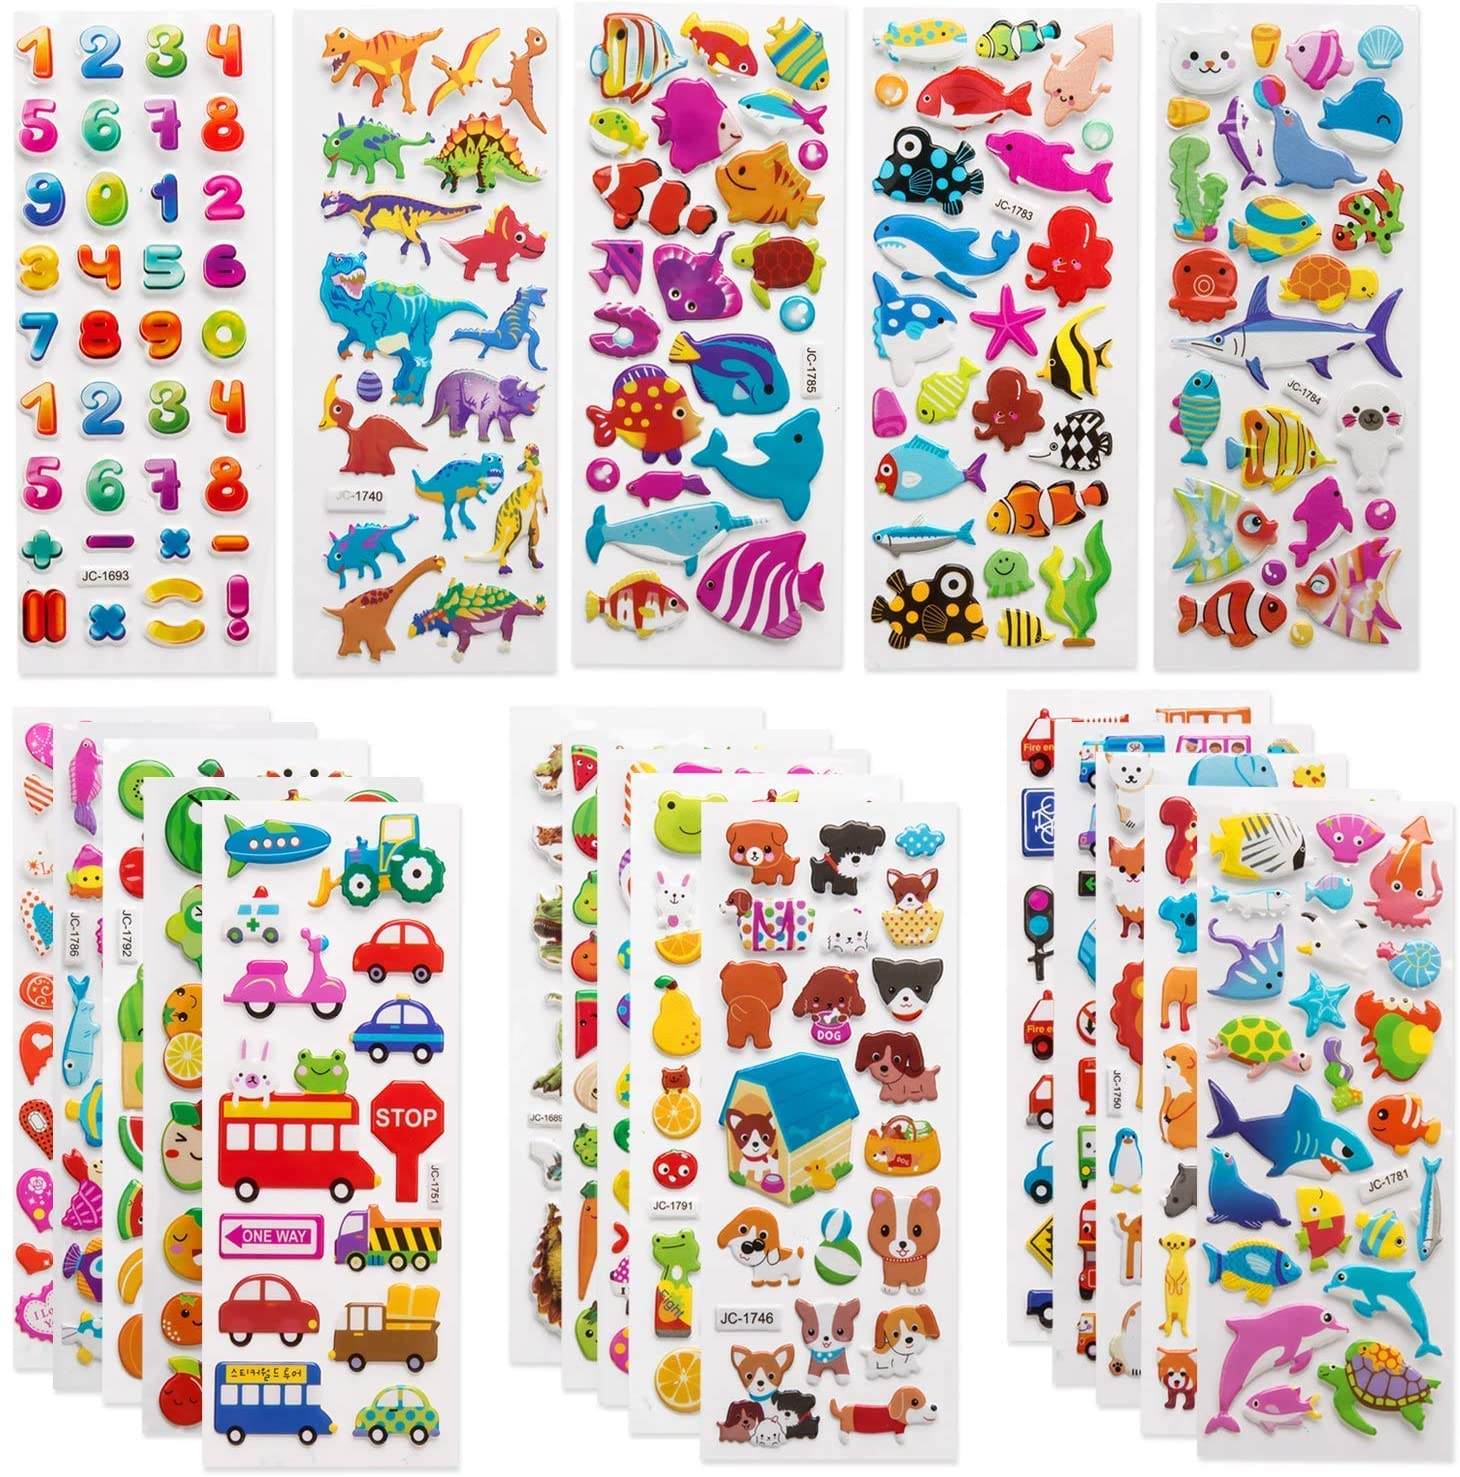 Kids Dinosaur 3D Puffy Stickers Craft Scrapbooking for Childrens UPINS 14 Diffrent Sheets 200+Count